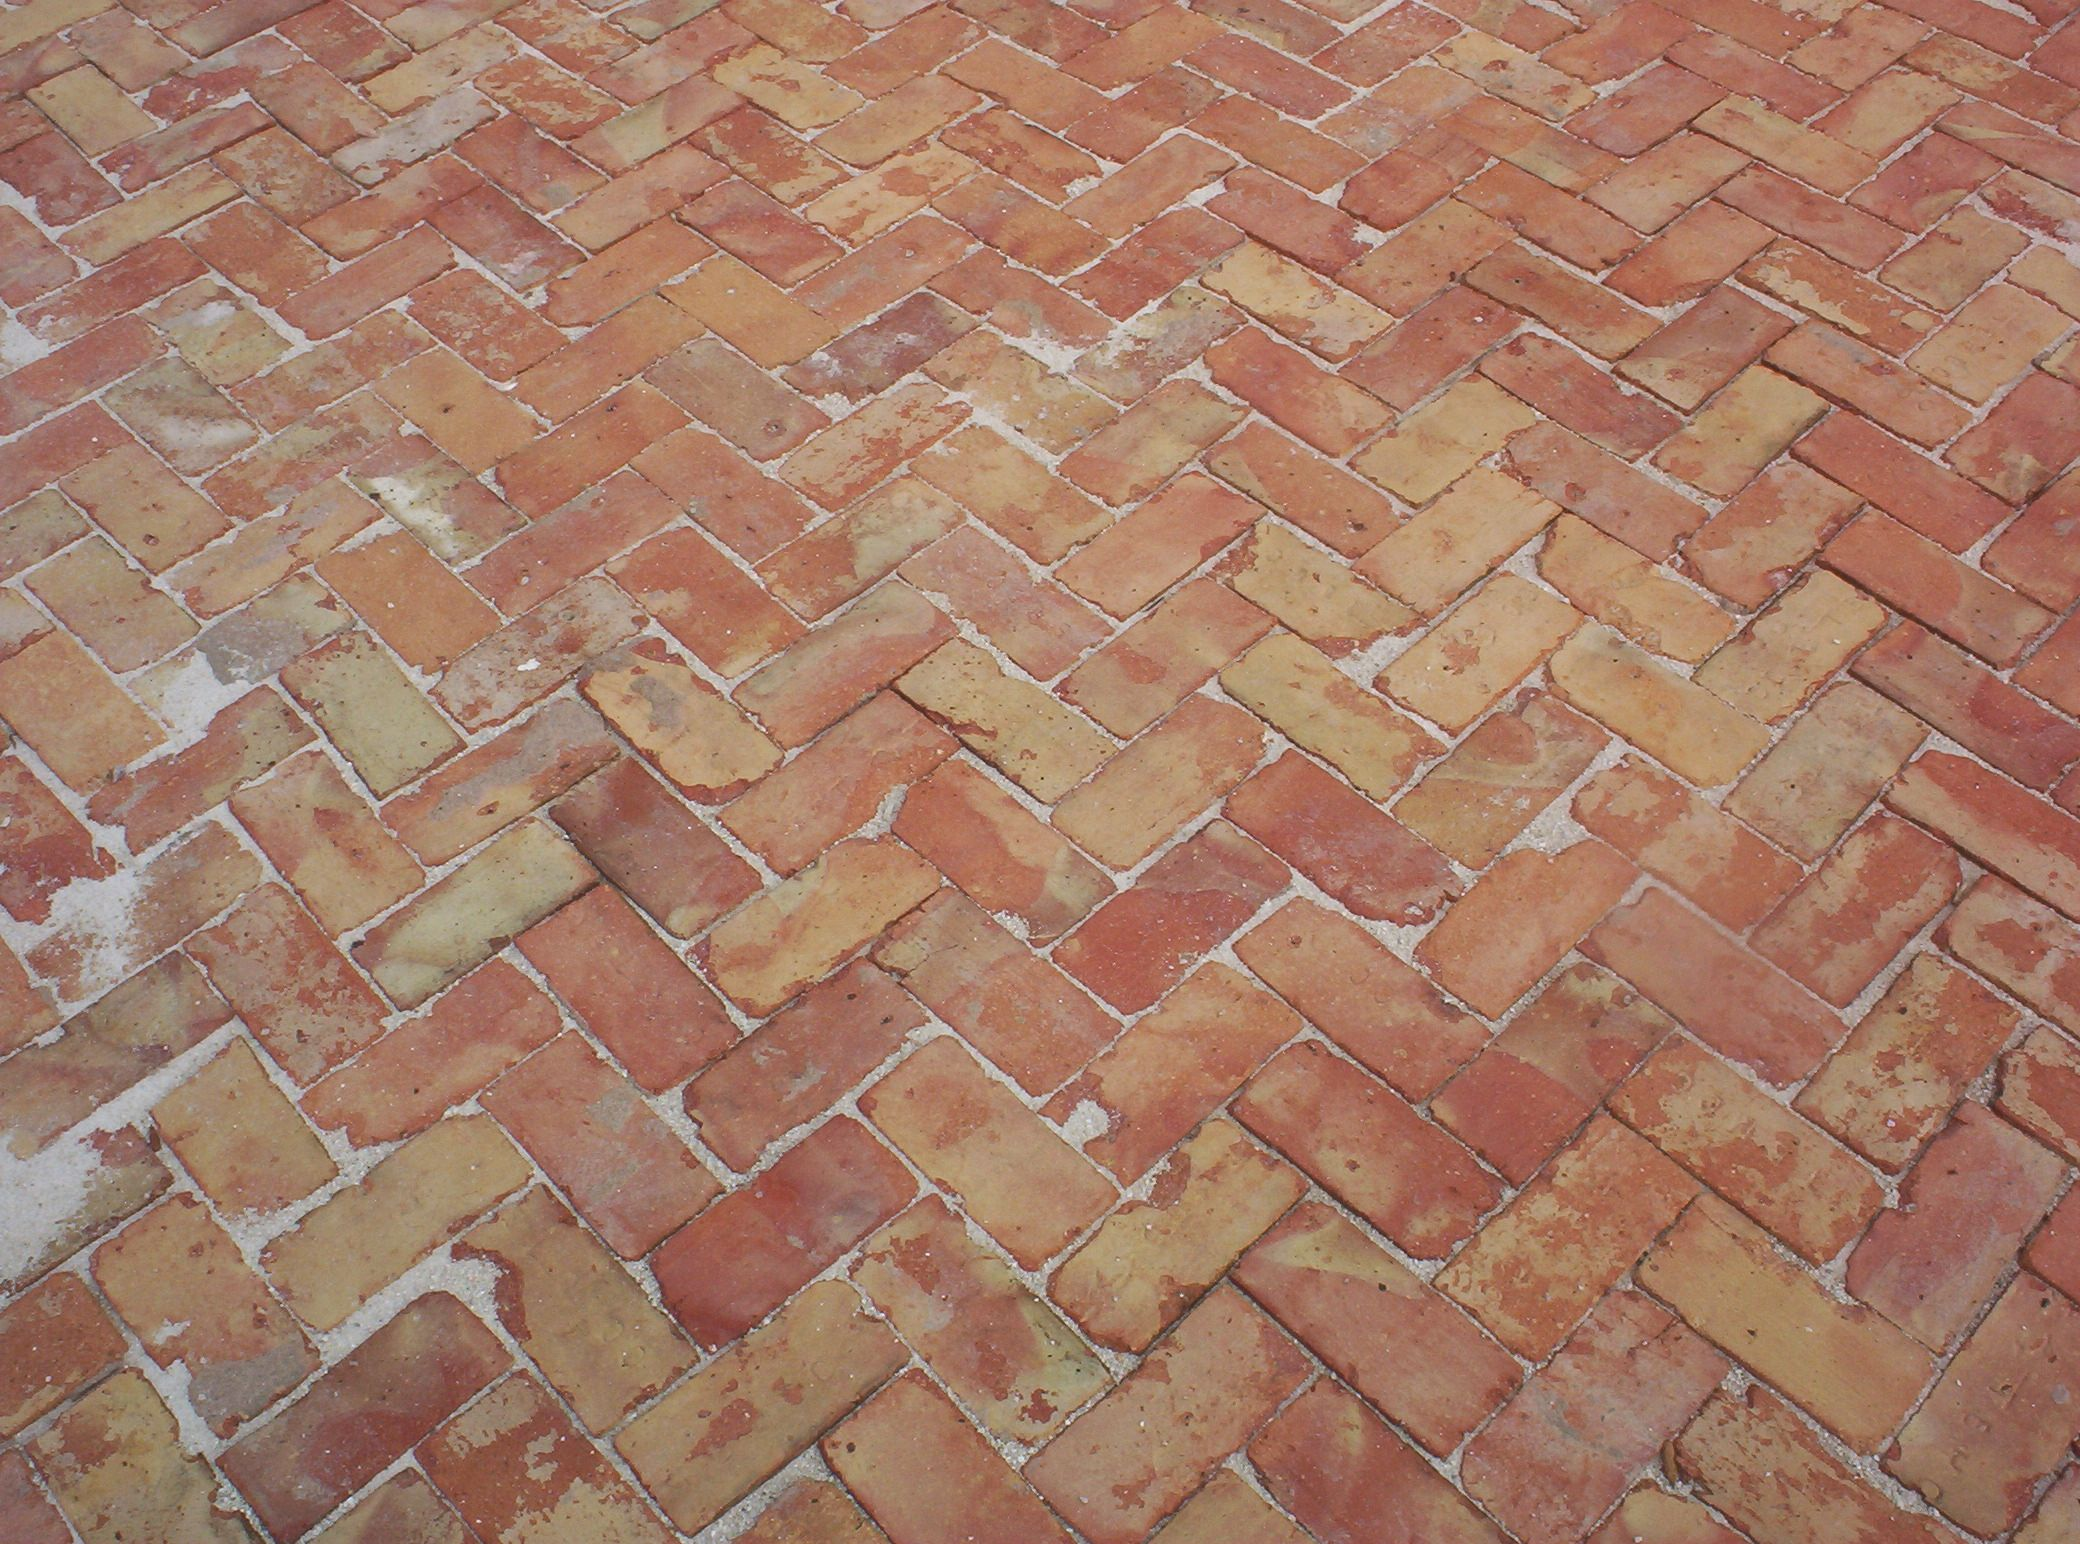 Michael Thronson Masonry Thin Stone Veneer Projects And: Old Chicago Clay Paver Swatch